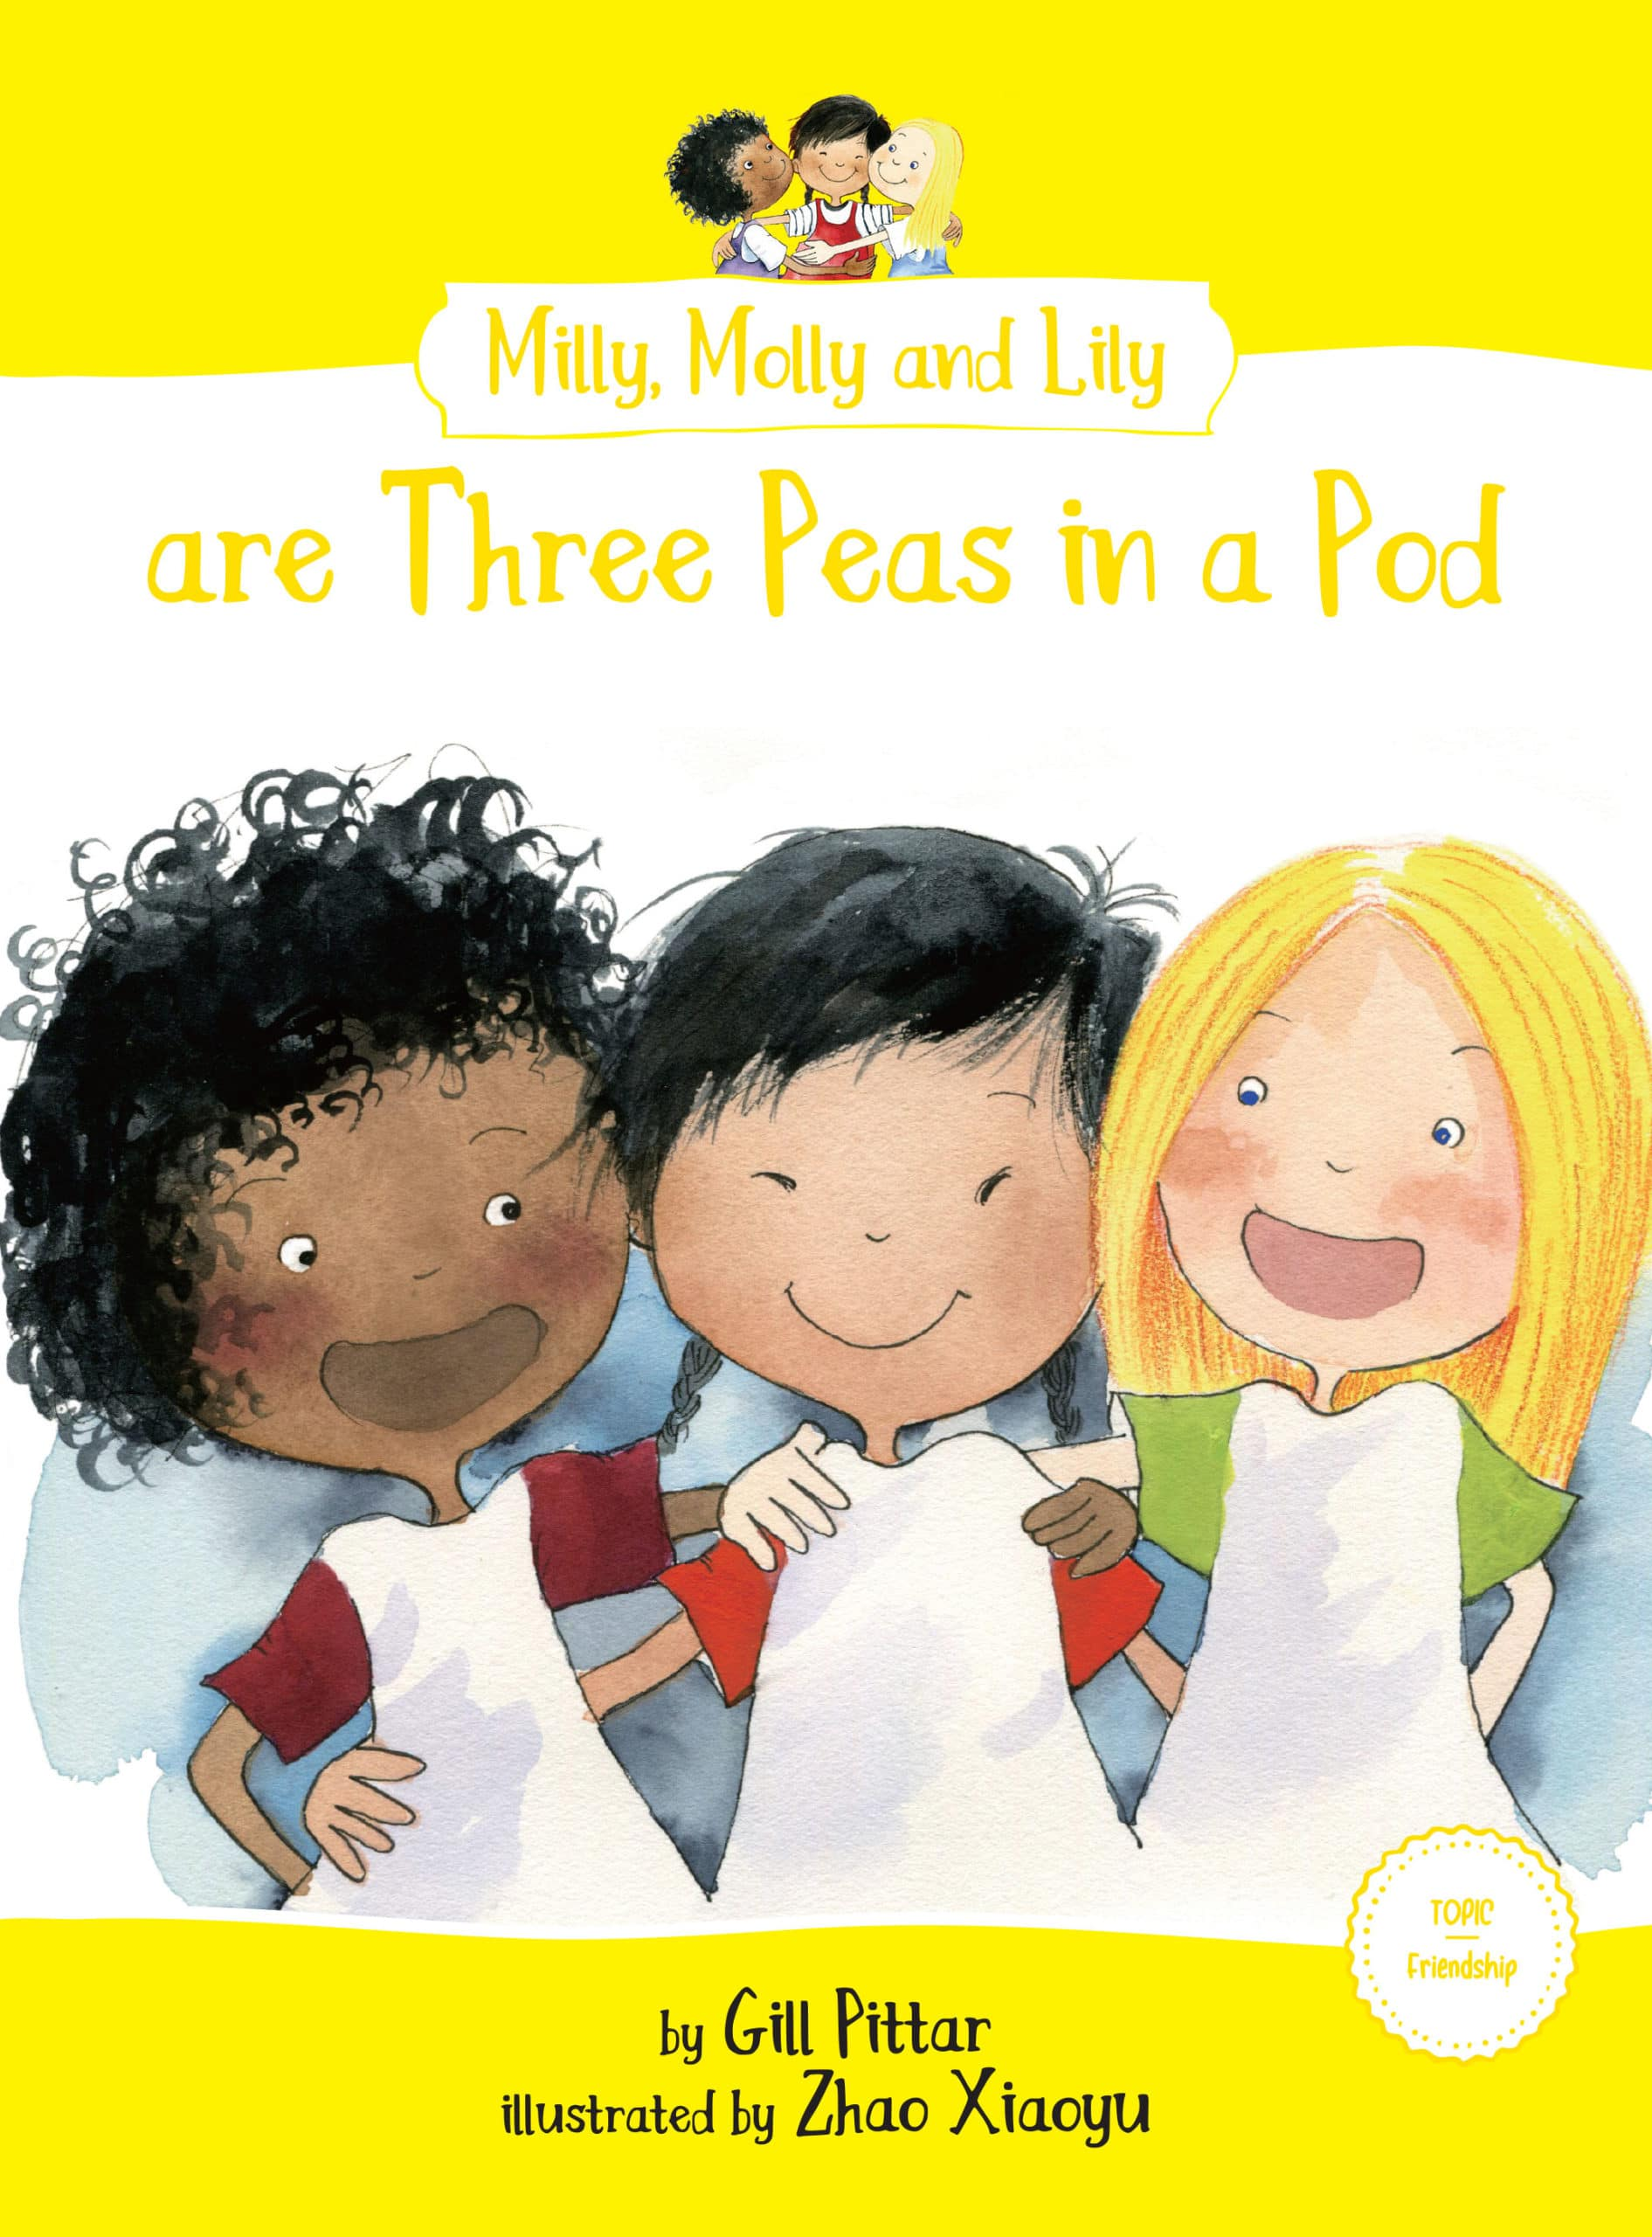 Milly, Molly and Lily are Three Peas in a Pod book cover